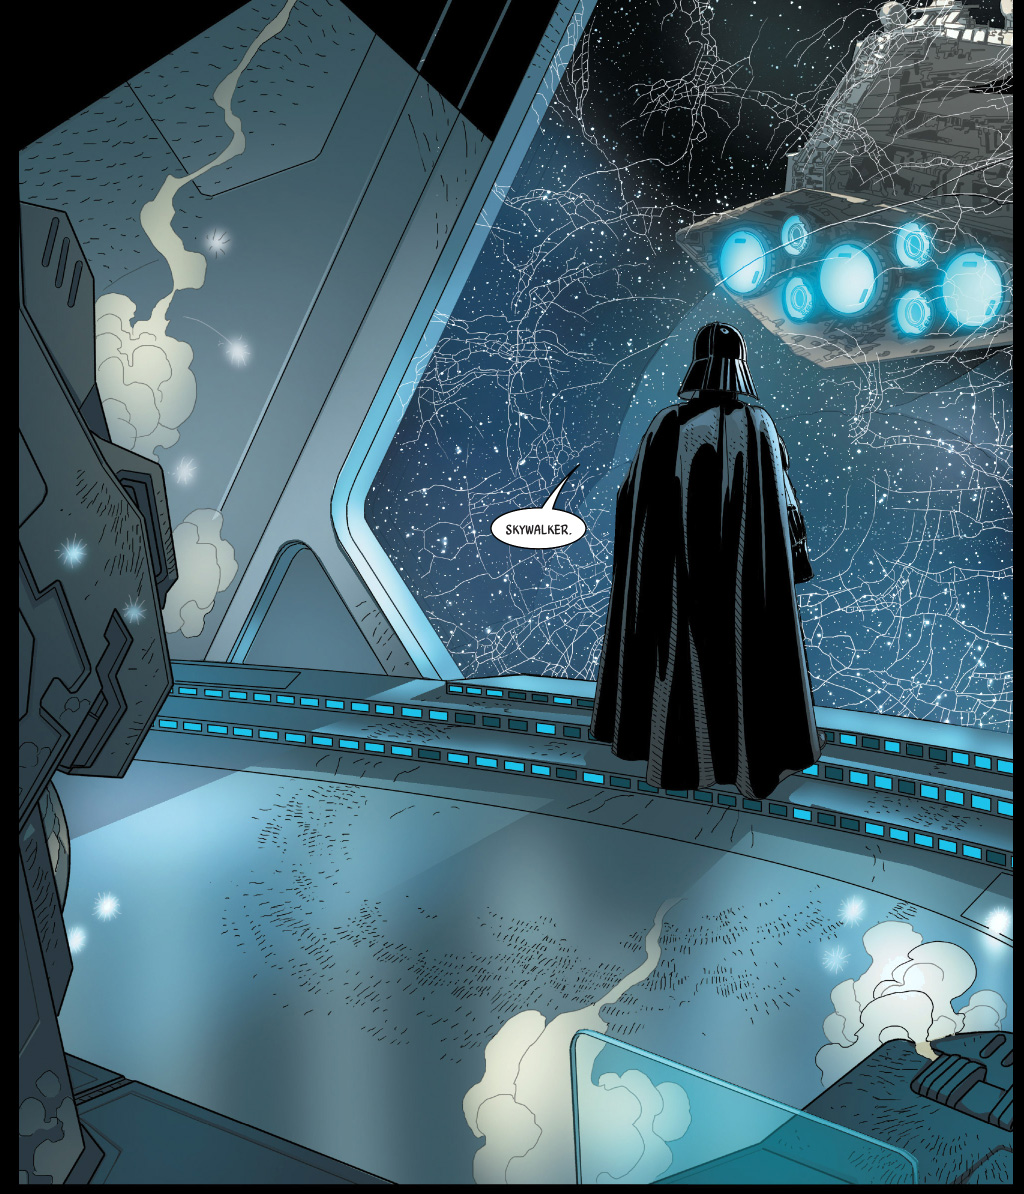 darth vader learns luke is his son